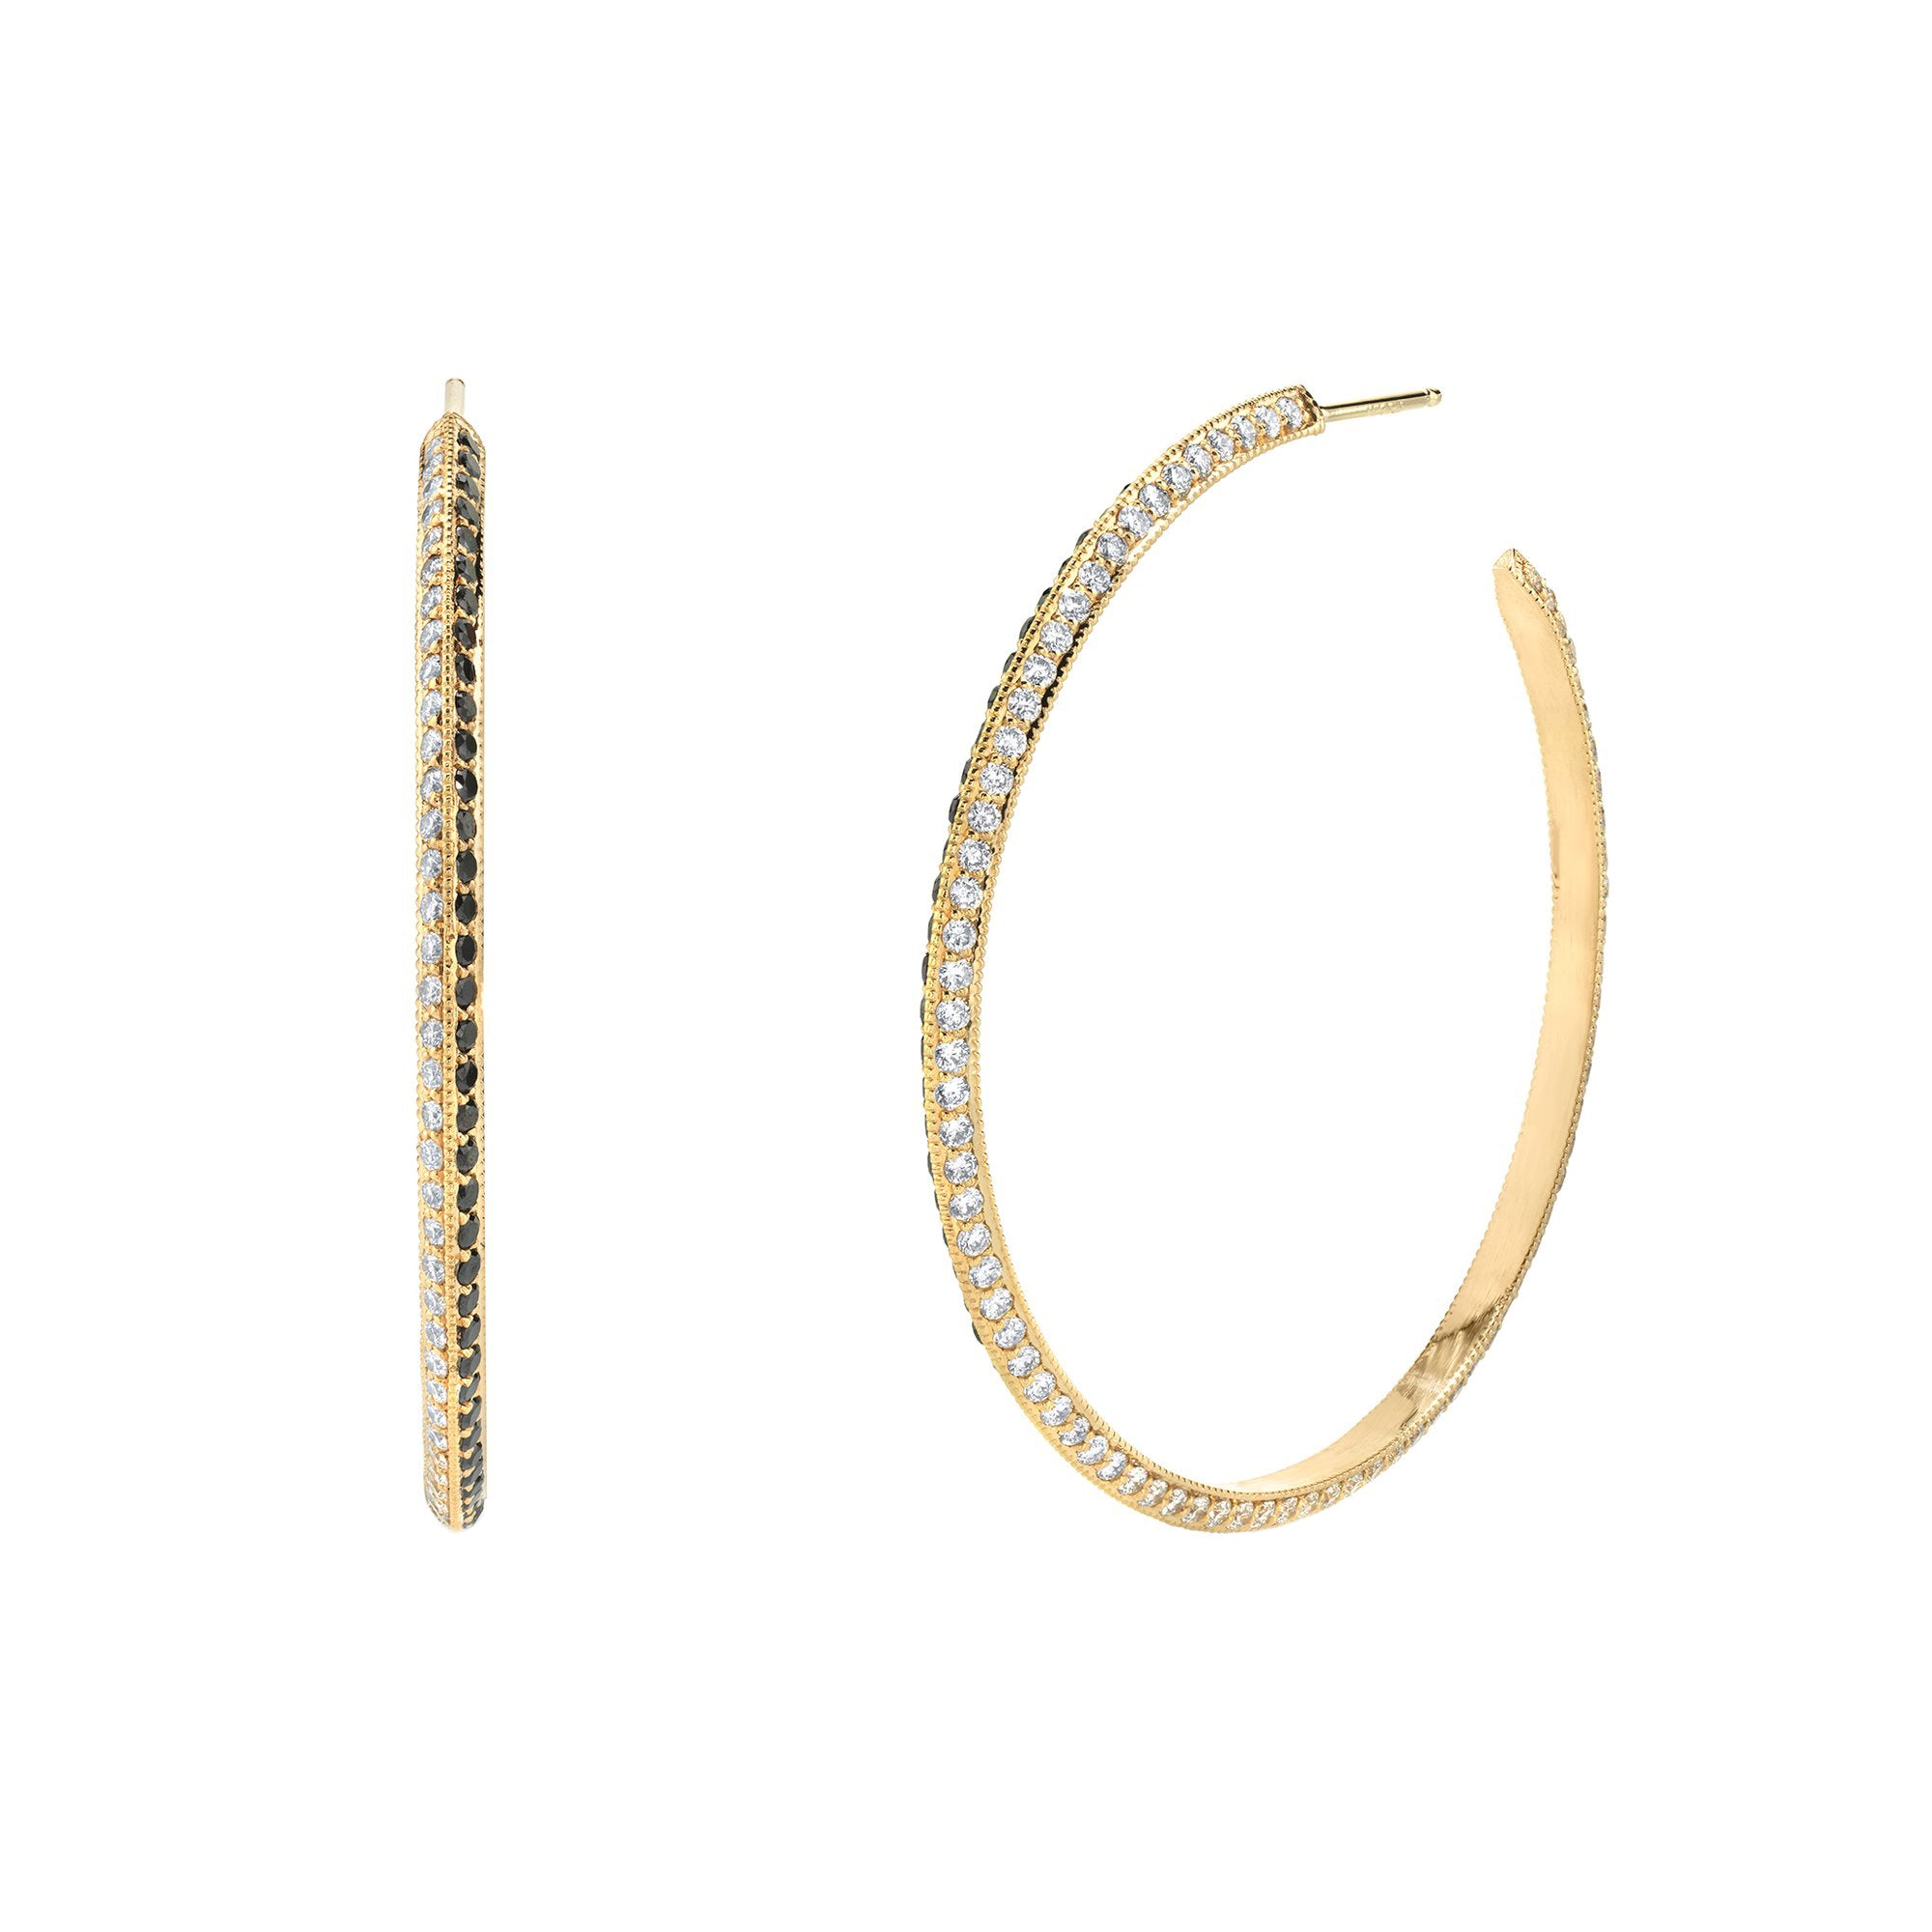 Lizzie Mandler Othello Knife Edge Hoops - Earrings - Broken English Jewelry